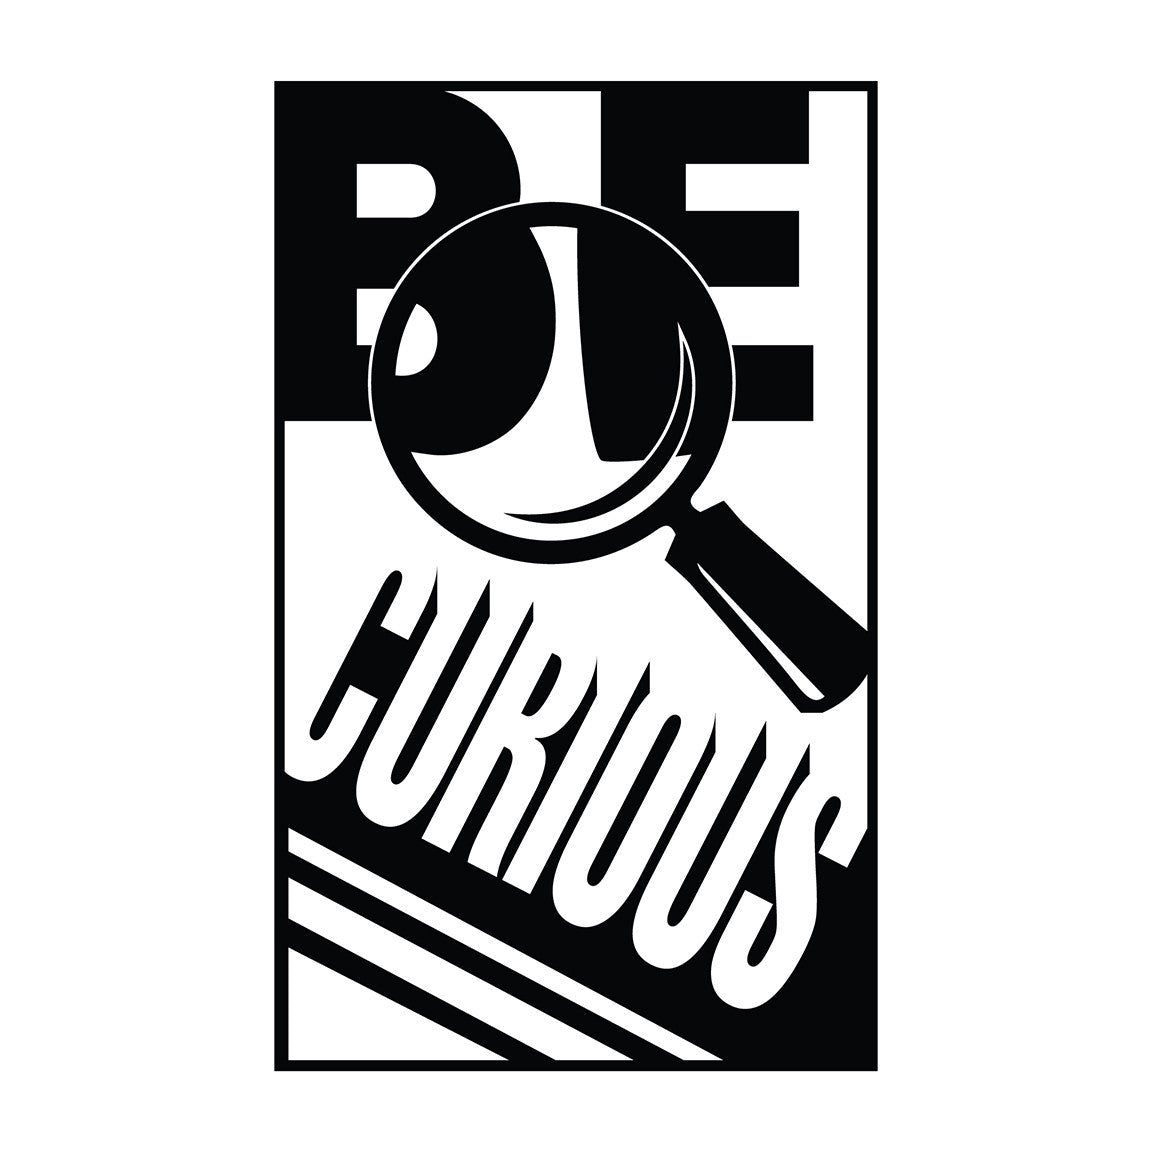 Be Curious - Office Quotes Mount wall decal